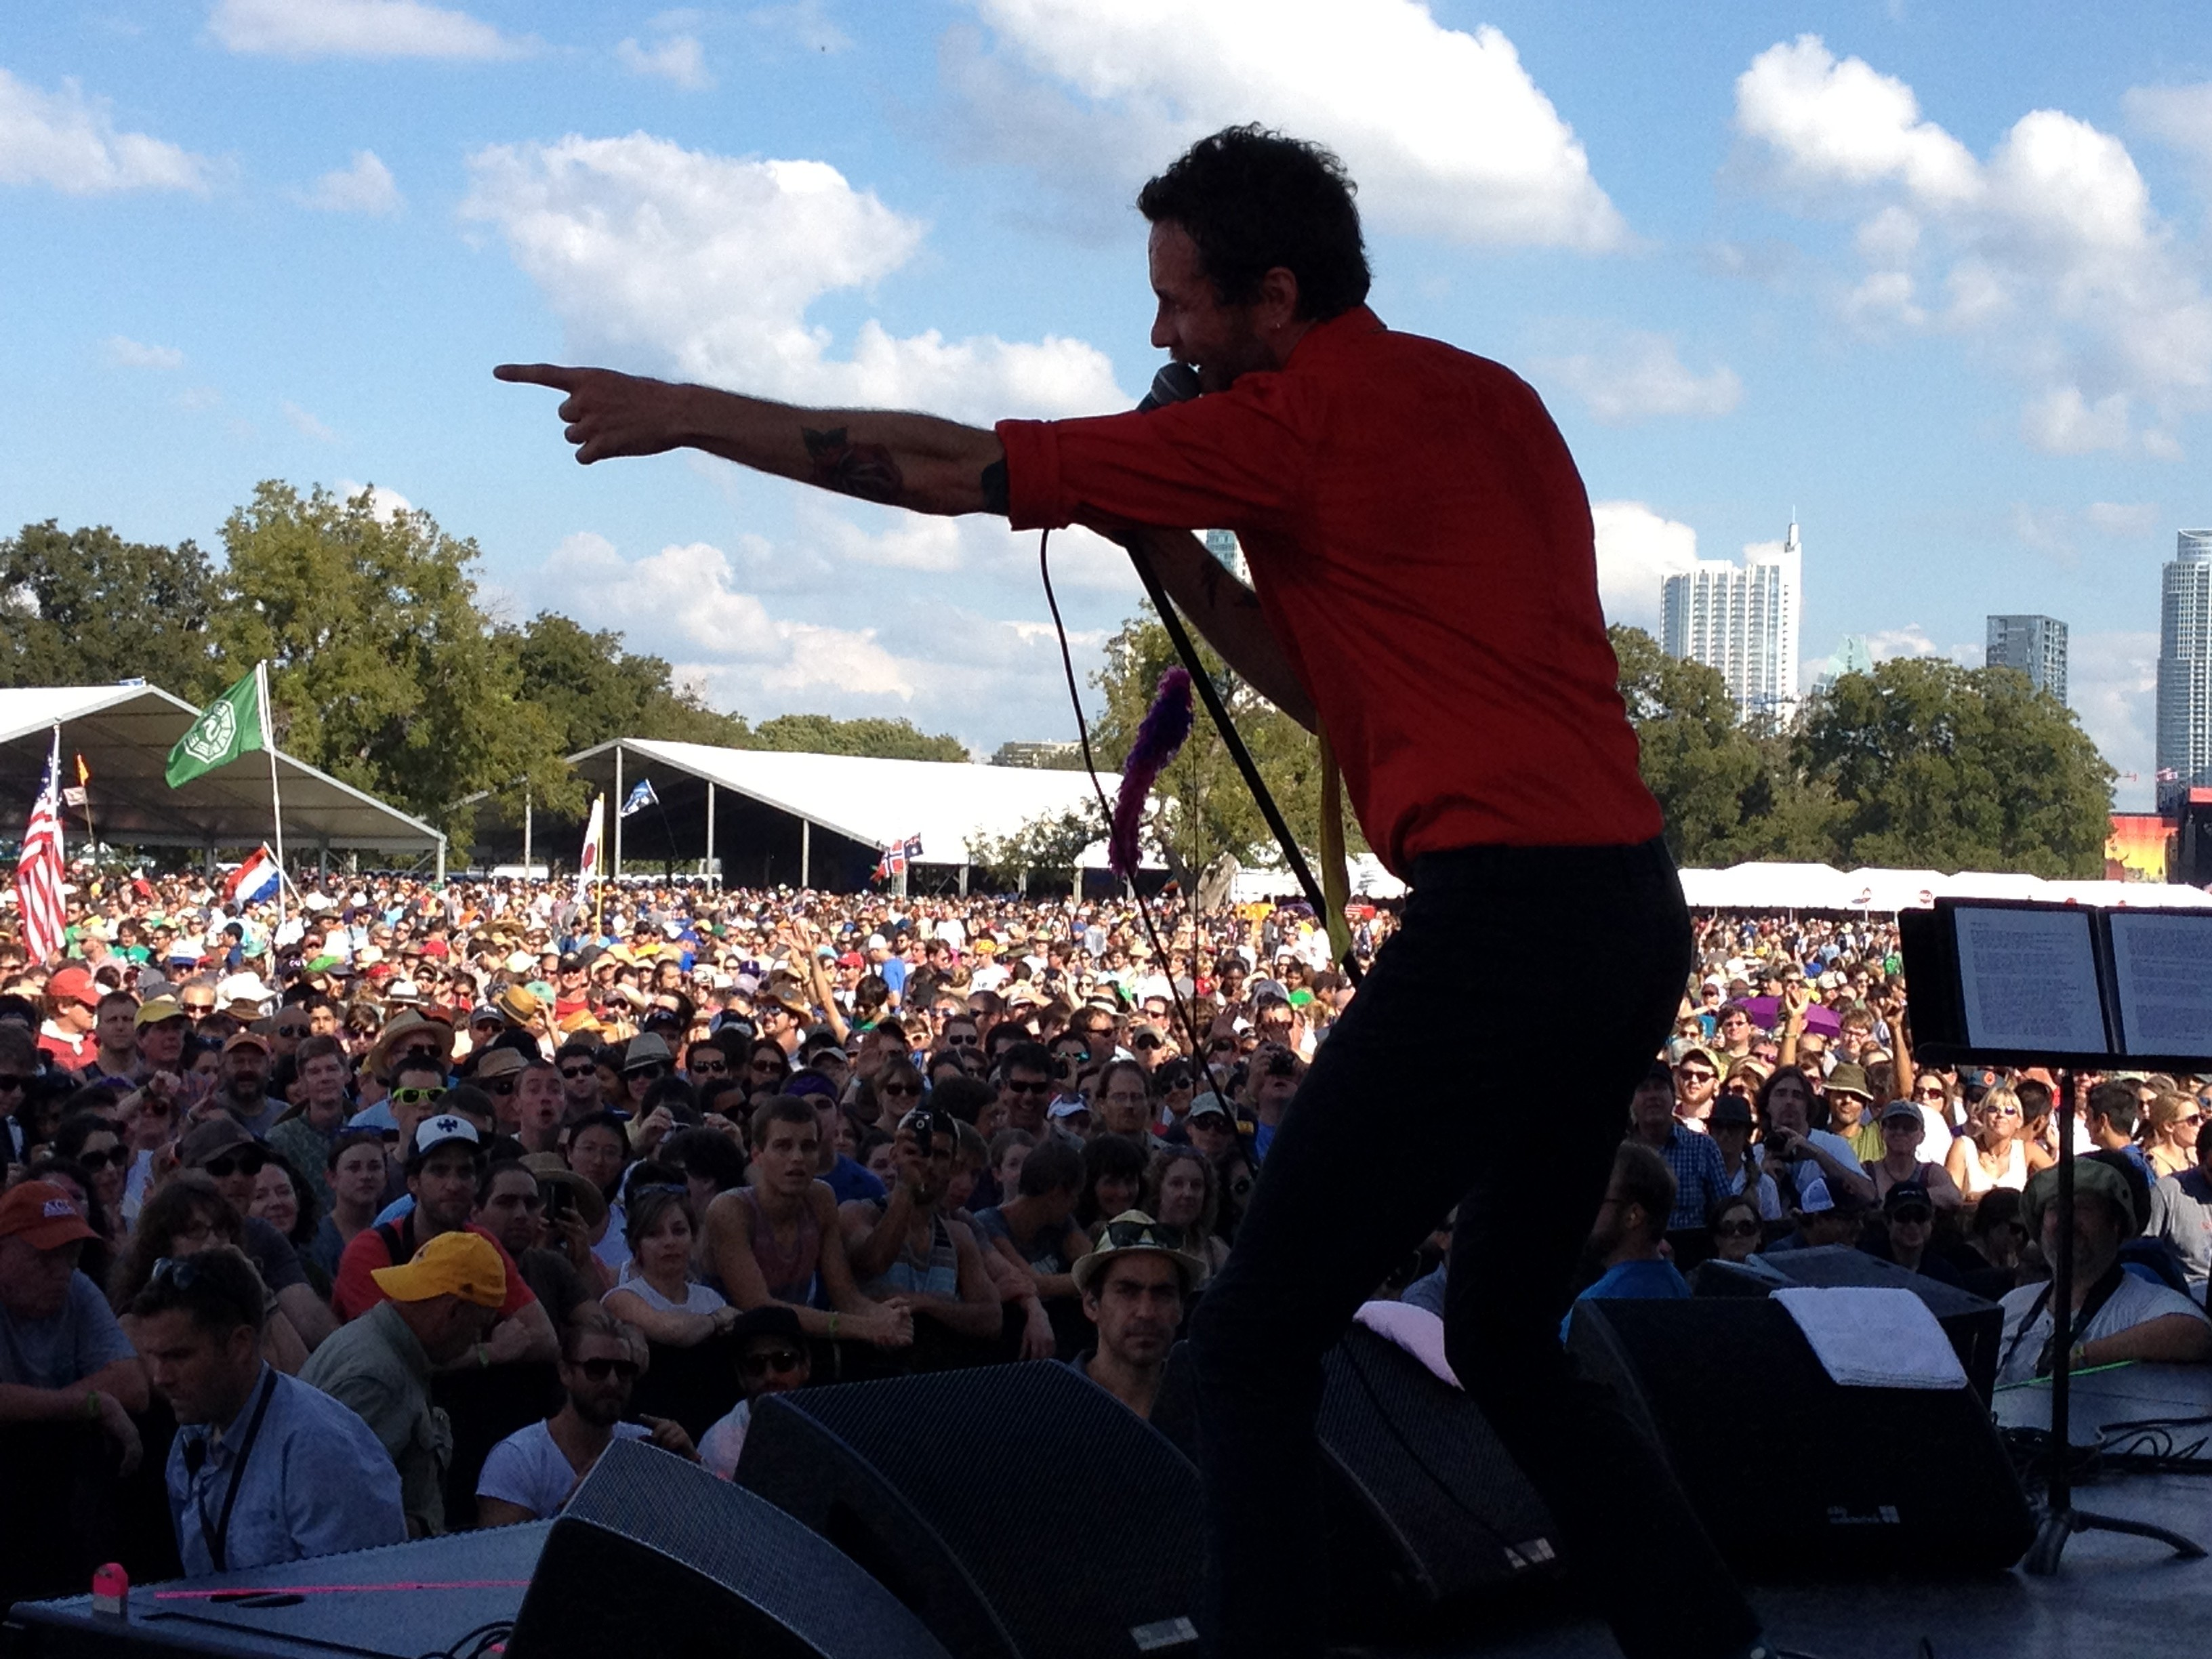 Jovanotti at ACL 2012